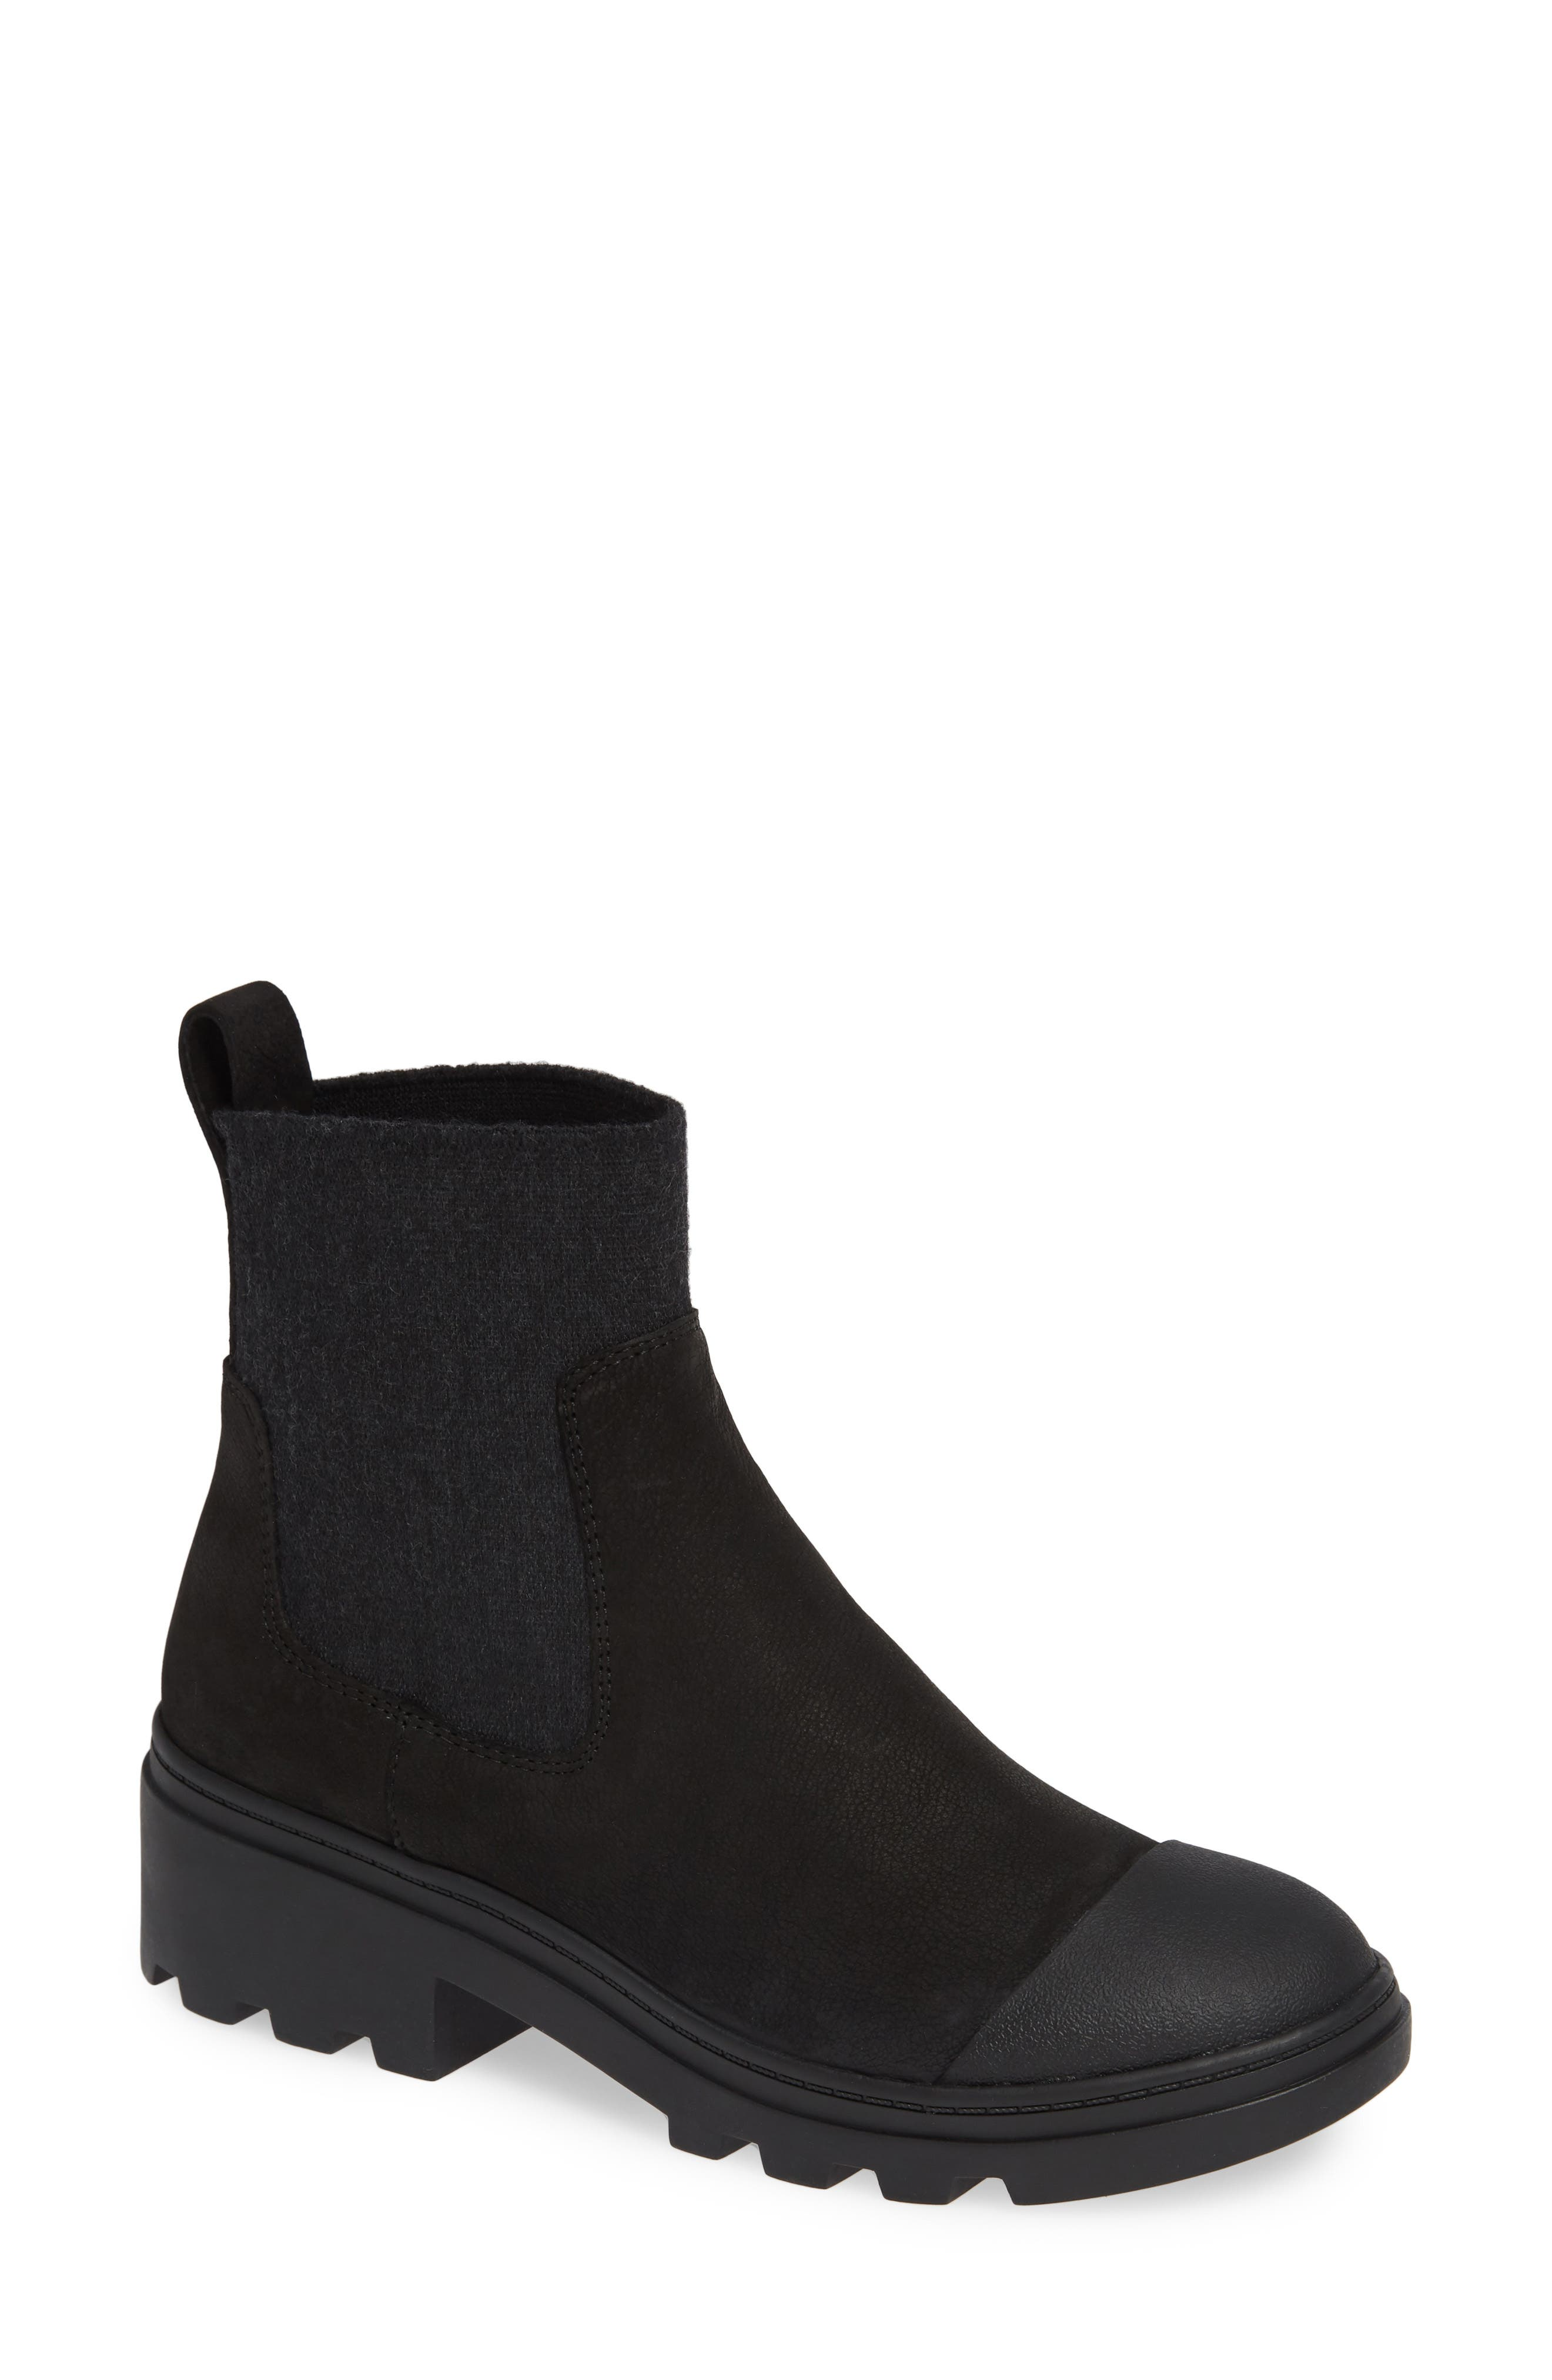 EILEEN FISHER,                             Teddy Bootie,                             Main thumbnail 1, color,                             001